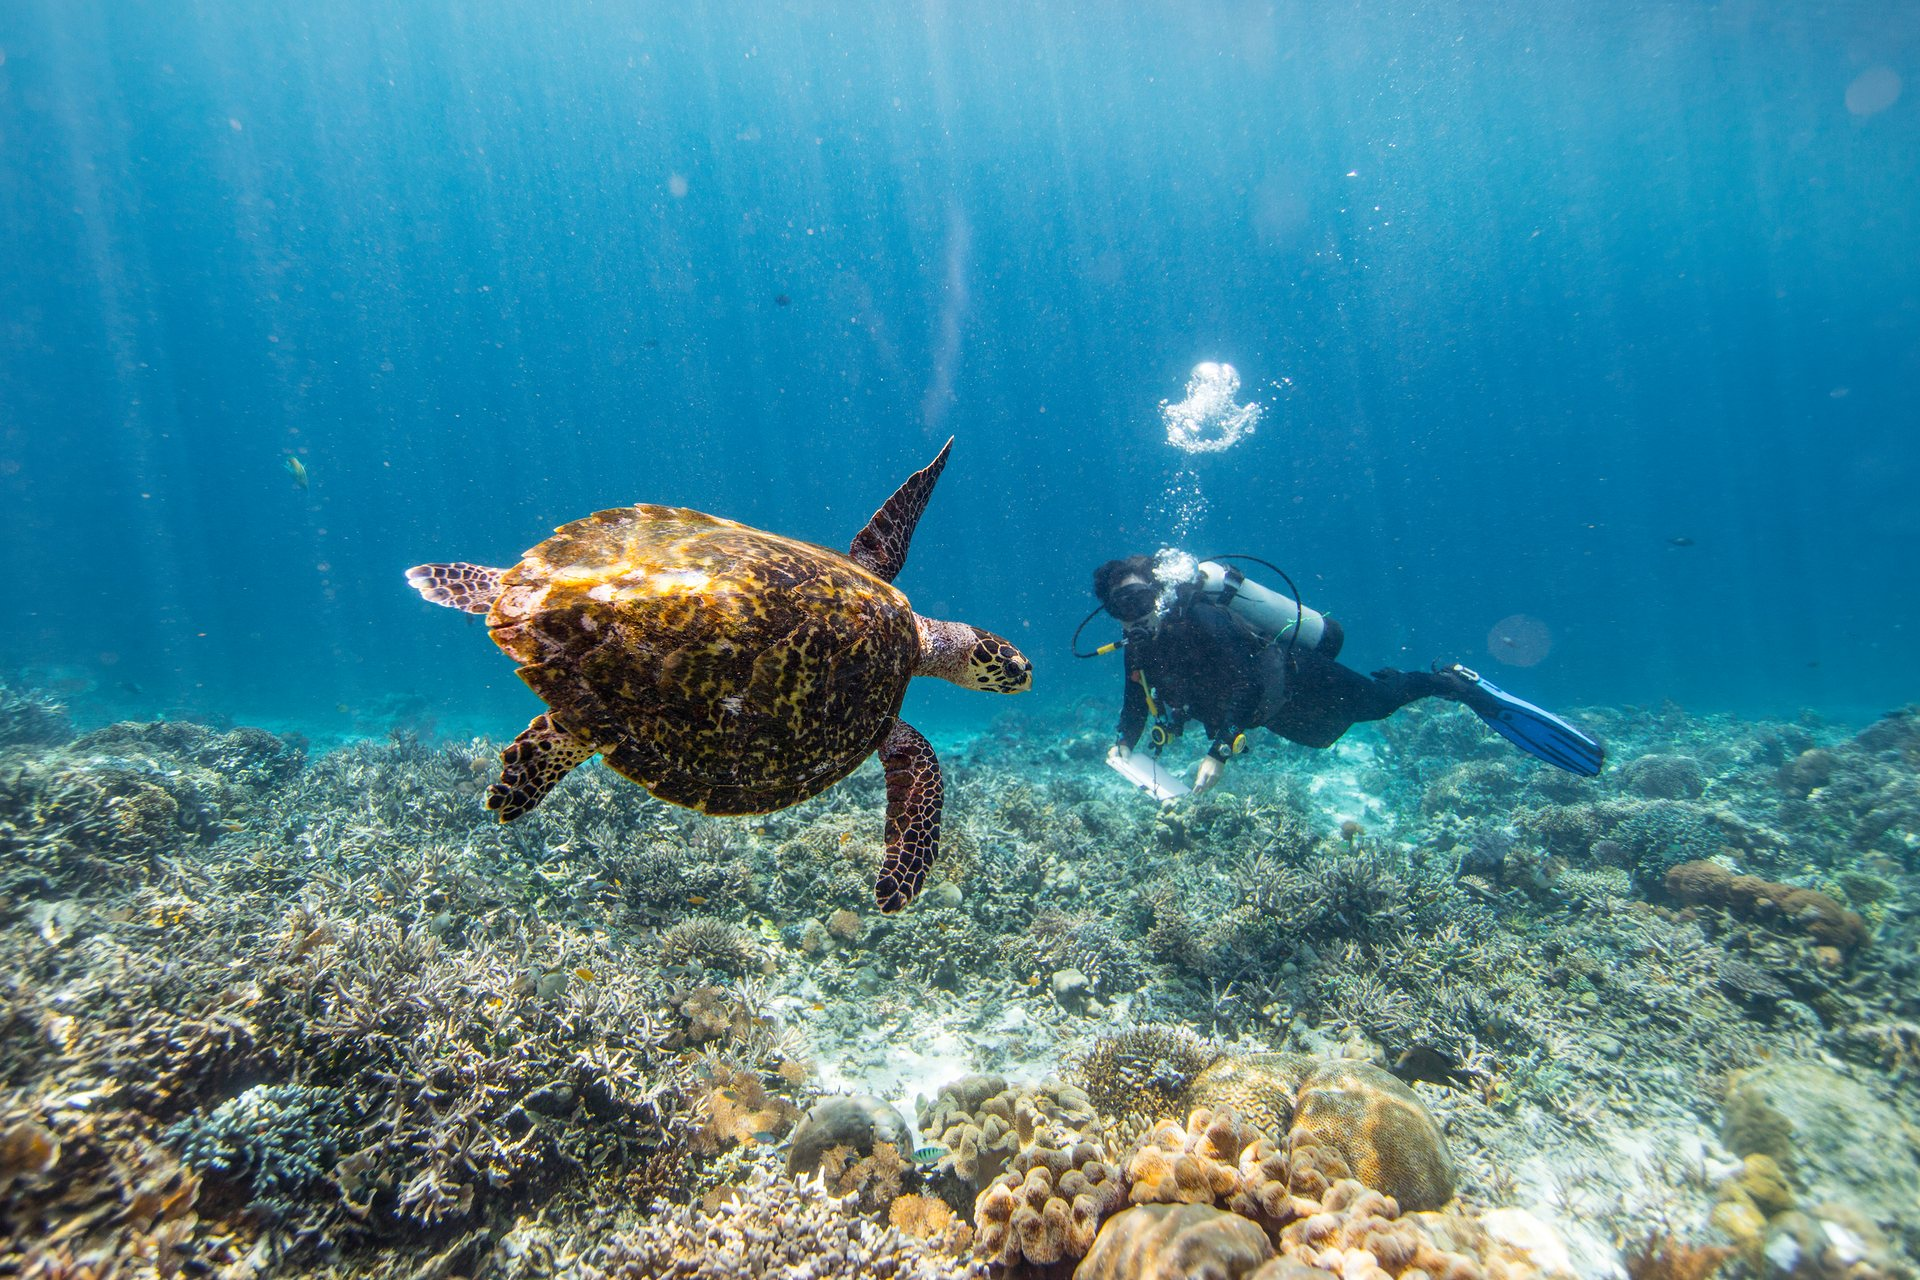 Gabby Ahmadia sees a hawksbill turtle. WWF has been working with a seaweed farming community to promote alternative livelihoods to protect endangered turtles.